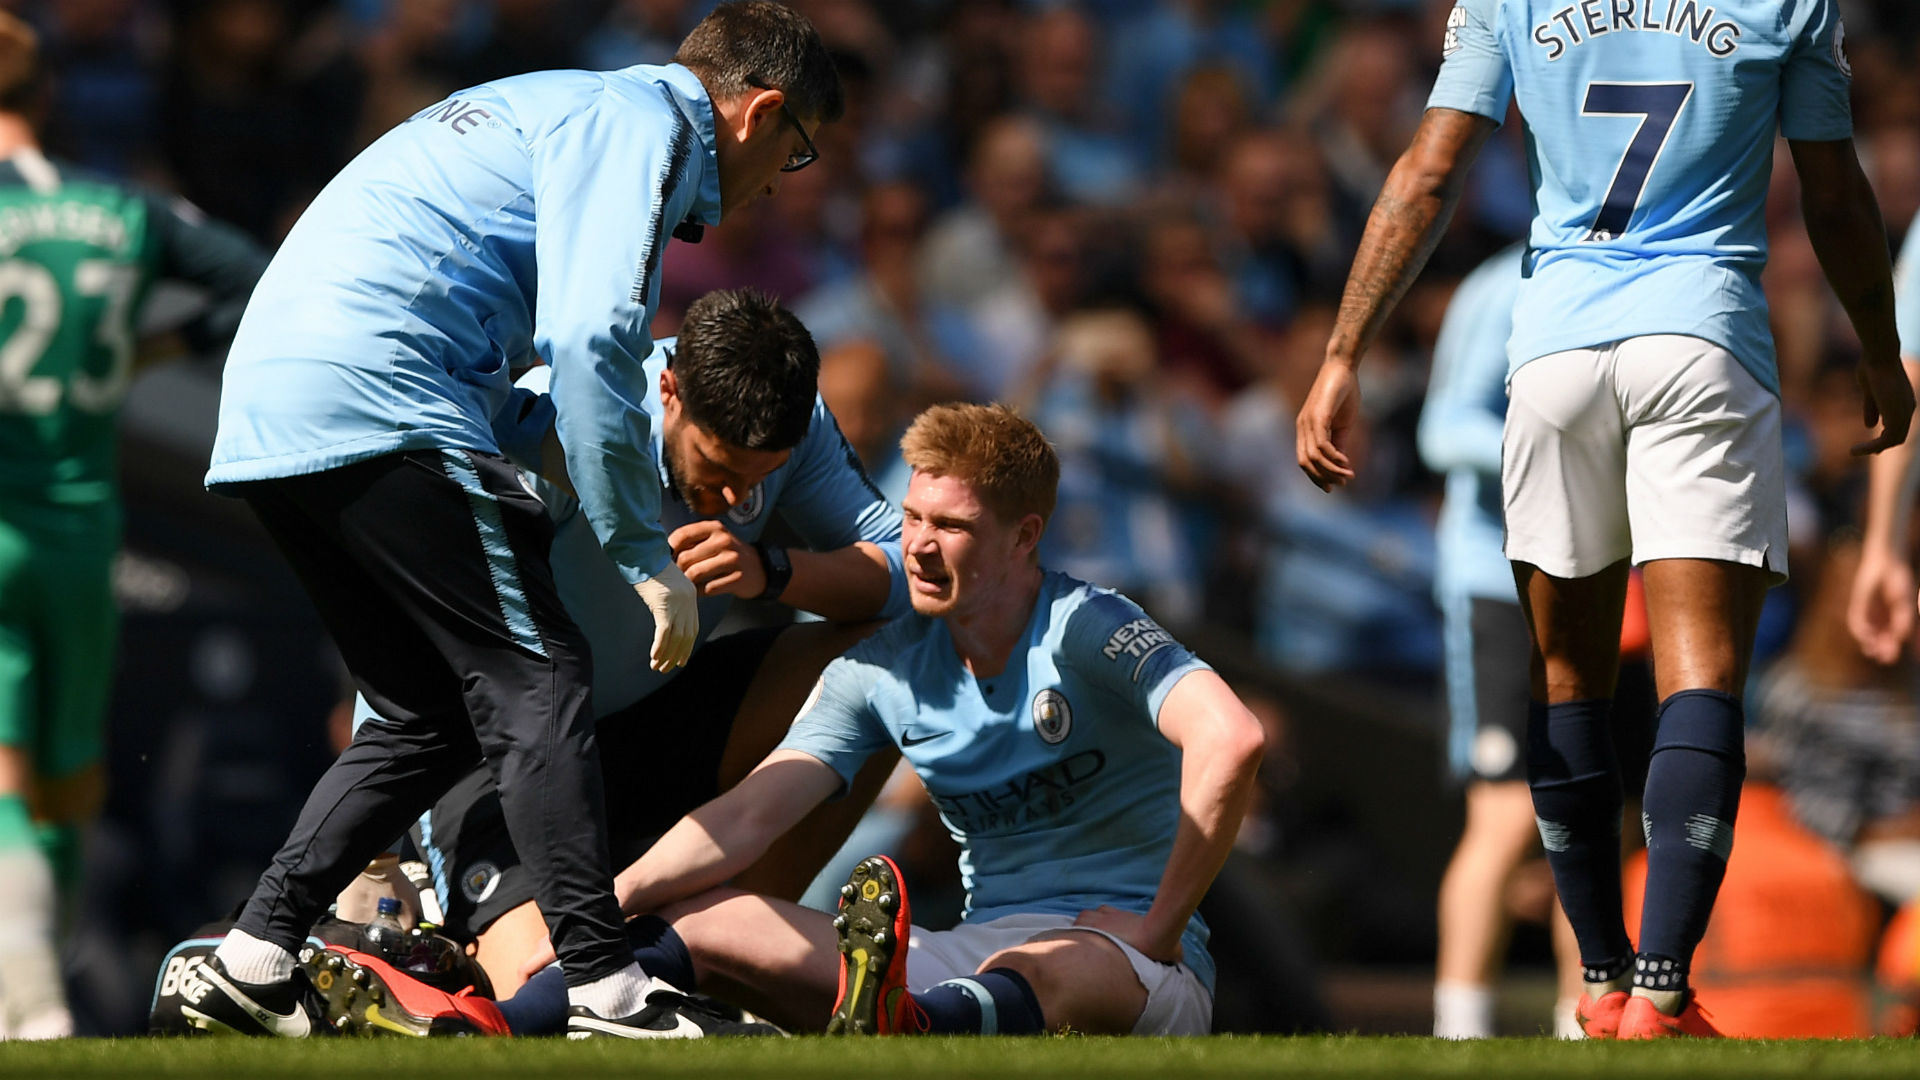 Guardiola suggests De Bruyne's season could be over after Spurs injury